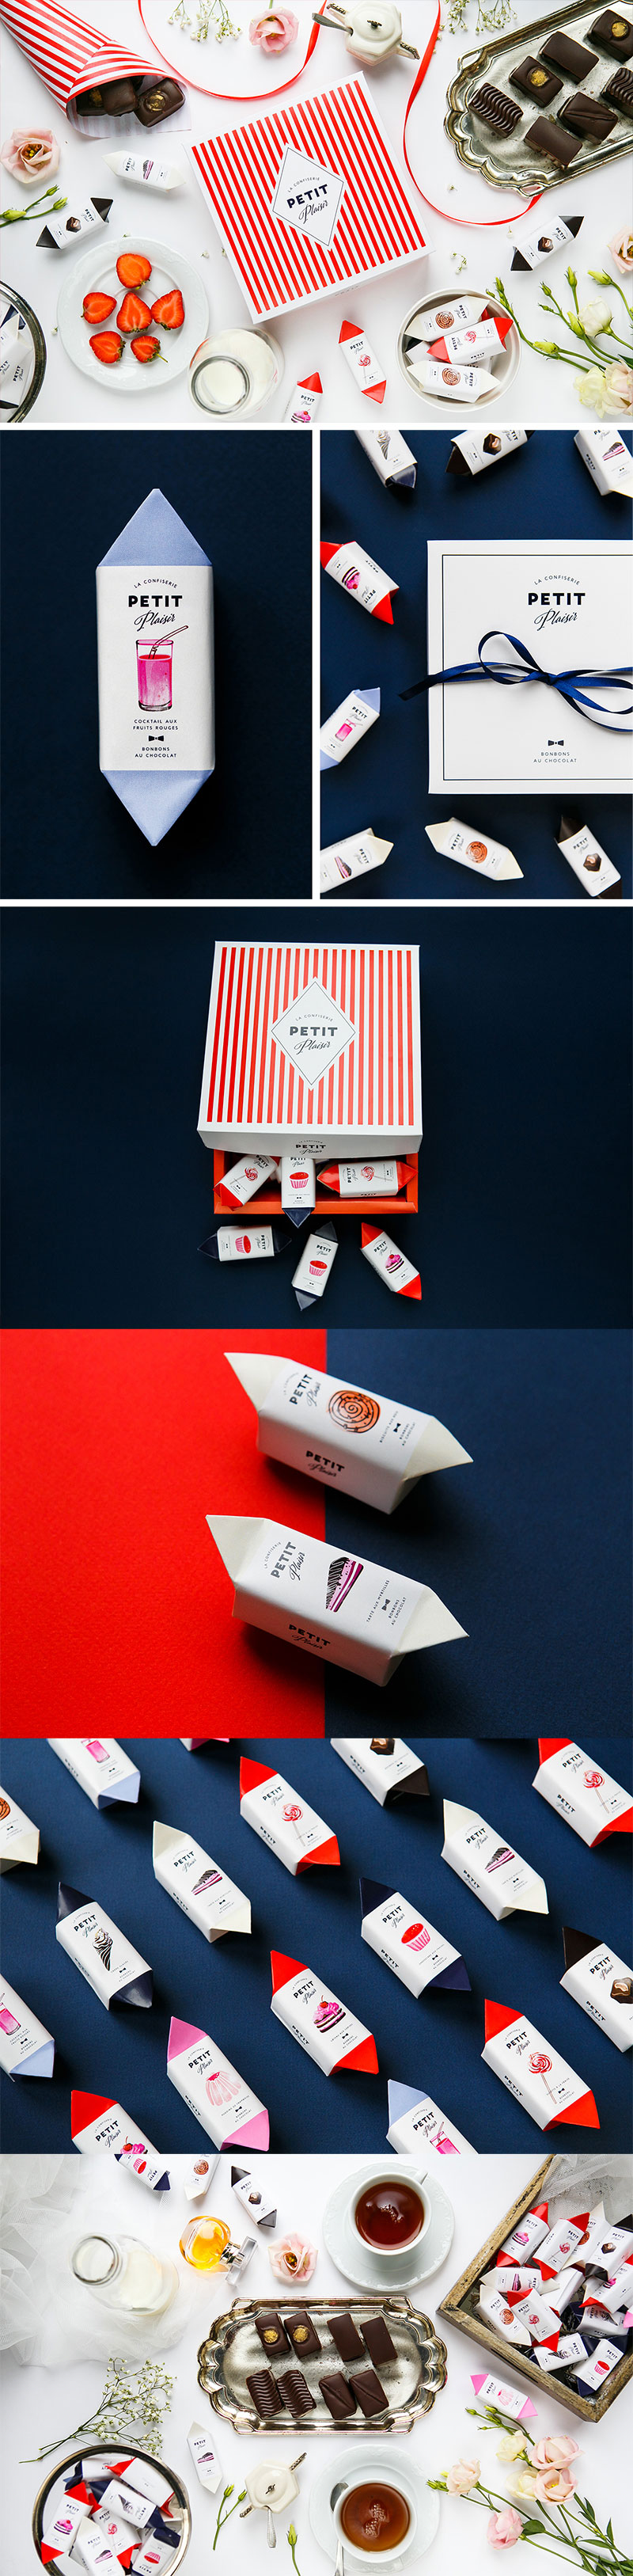 Petit plaisir Chocolate Branding and Packaging